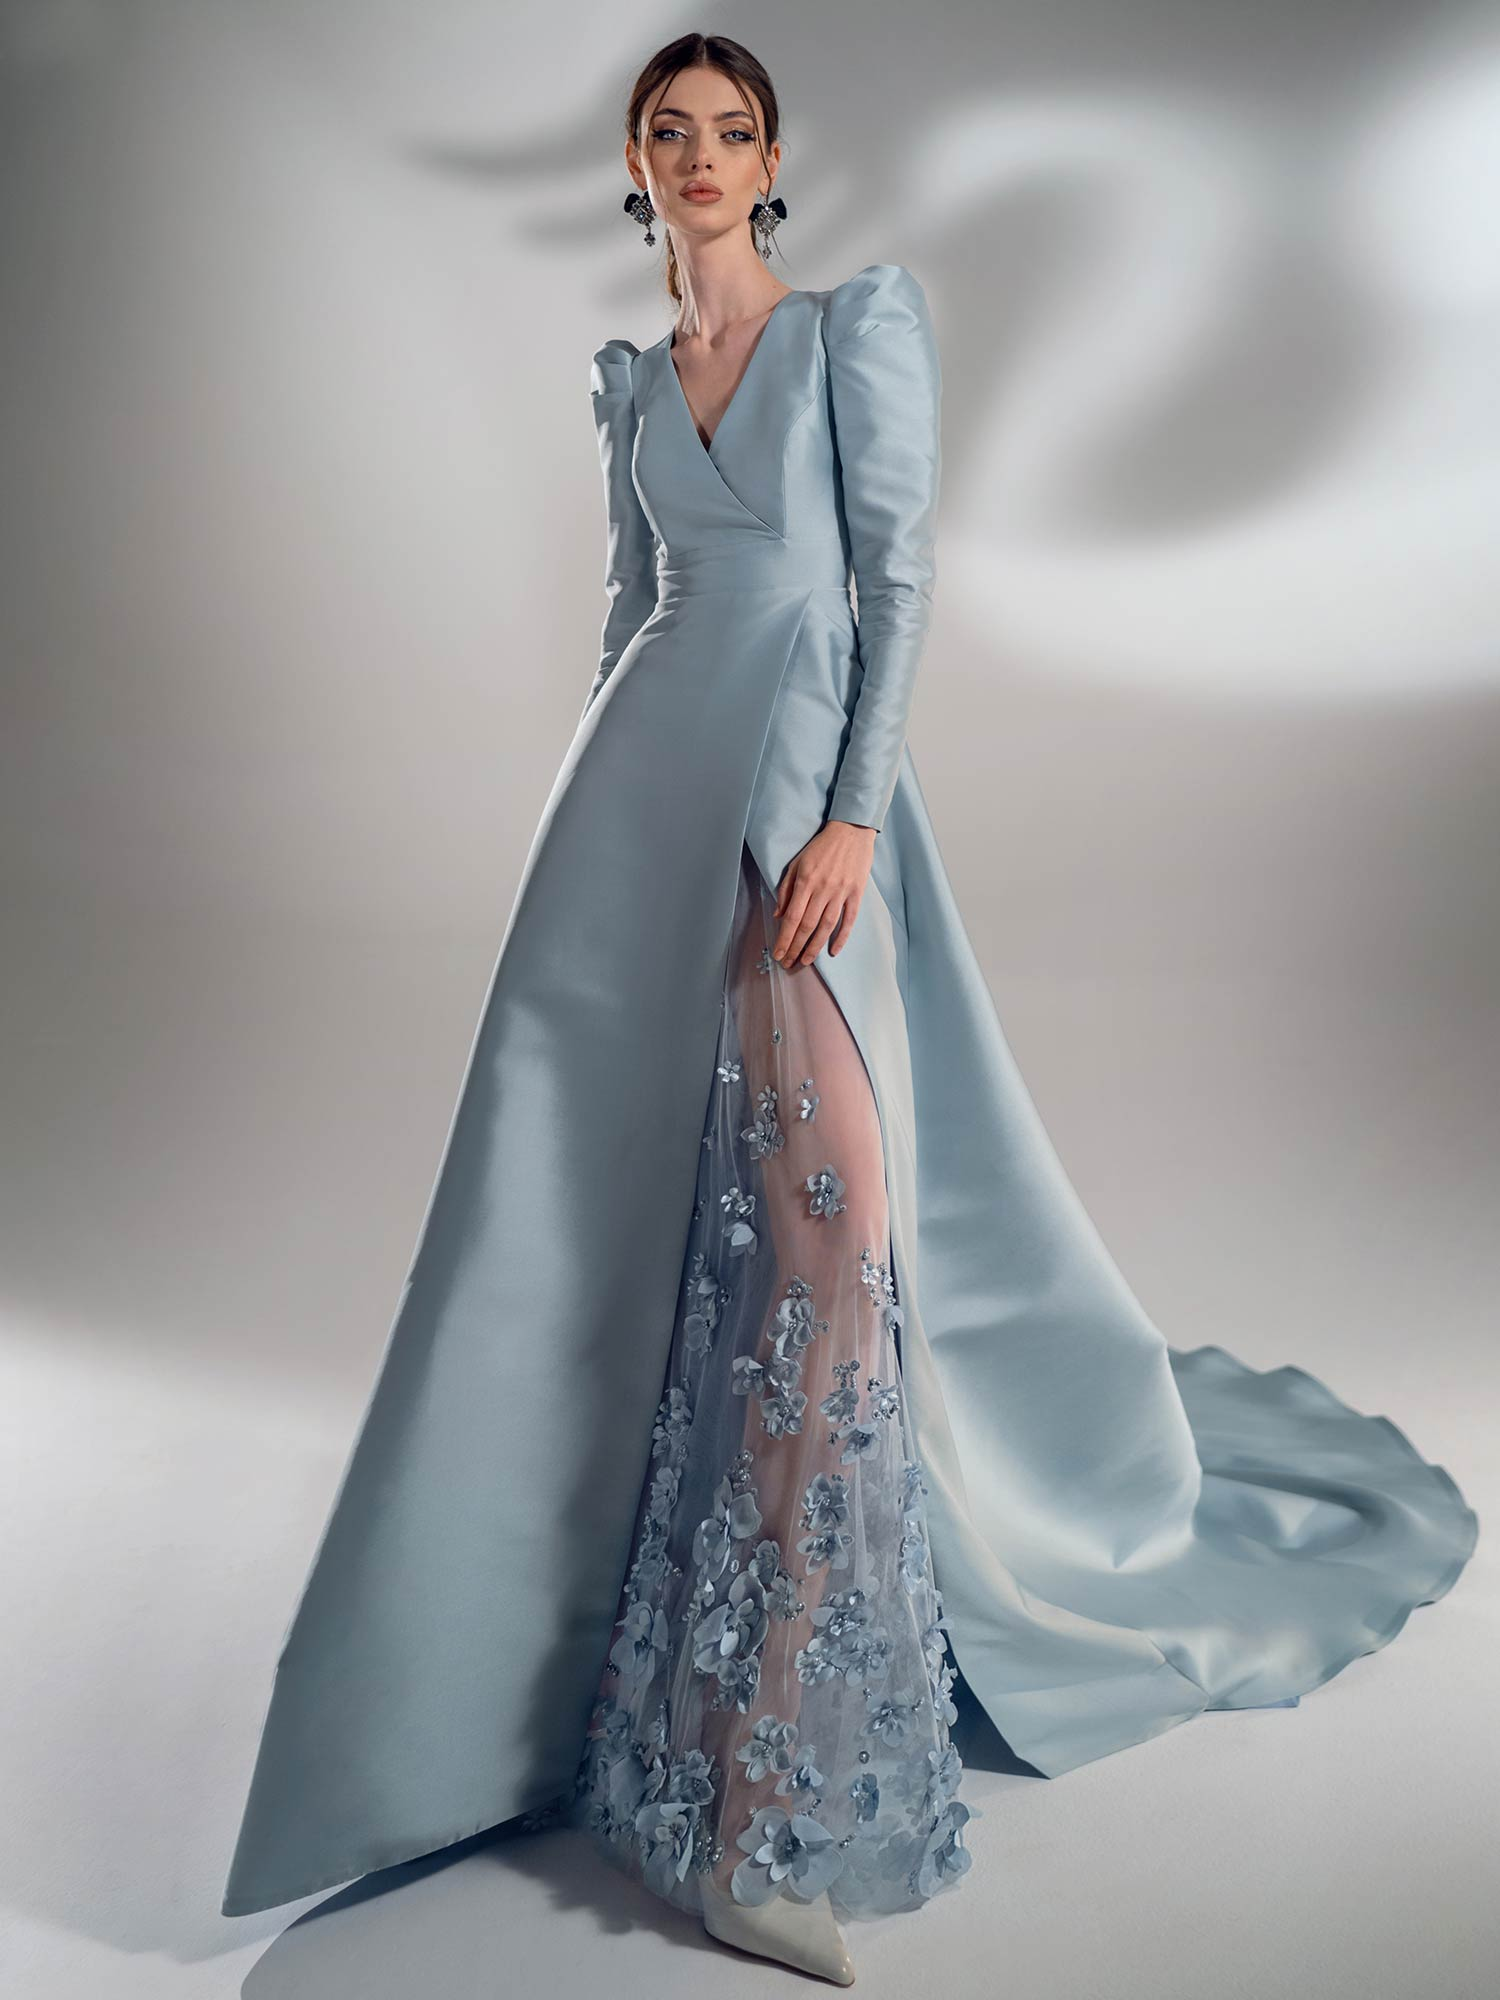 Style #2115, Mikado A-line wedding dress with long sleeves, available in grey-blue, ivory